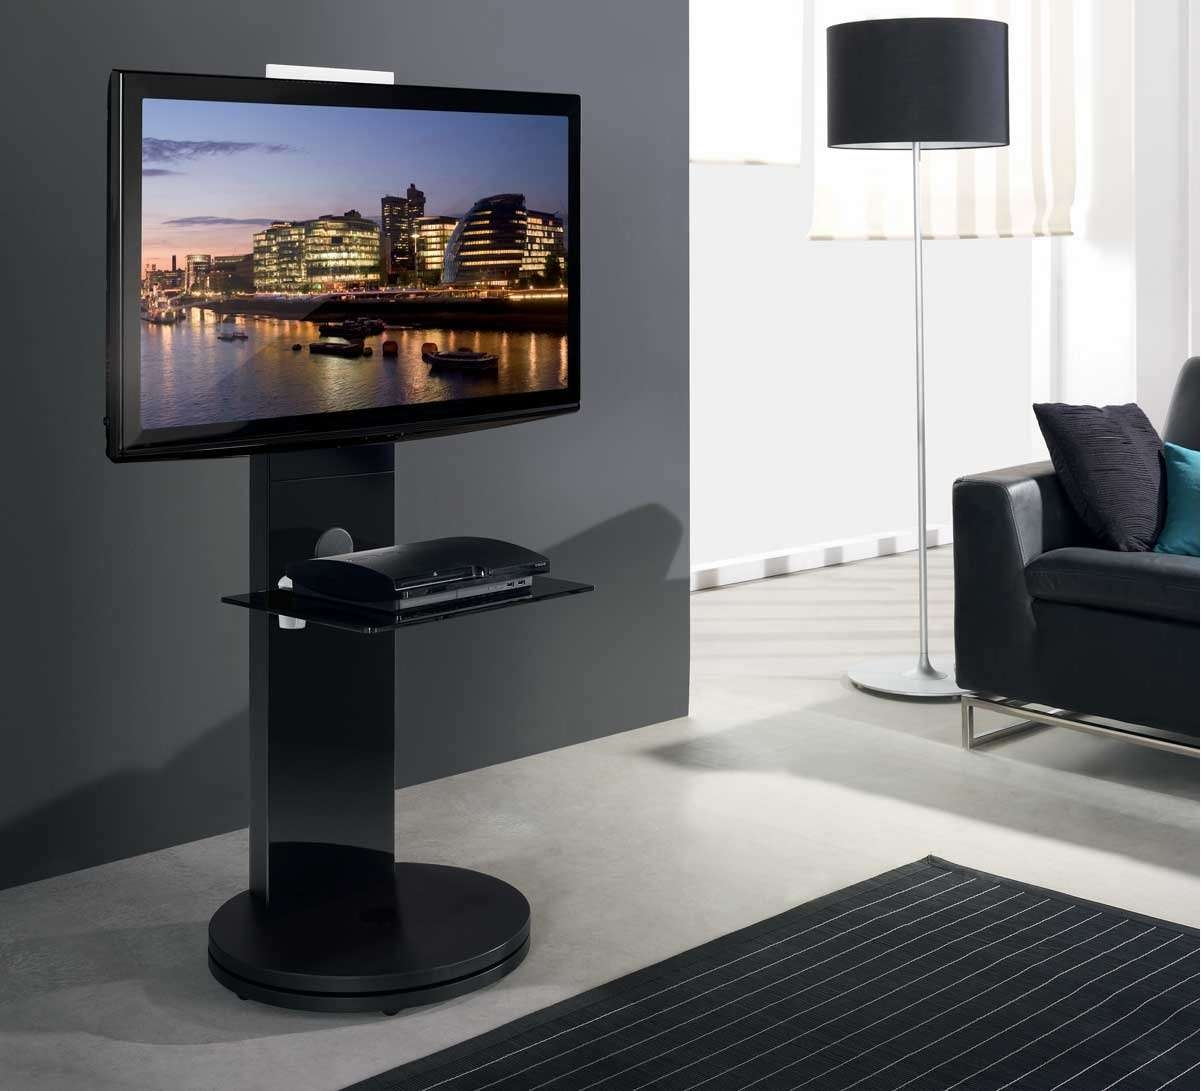 B Tech Btf811 Black Corner Cantilever Tv Stand Pertaining To Cantilever Tv Stands (View 6 of 15)